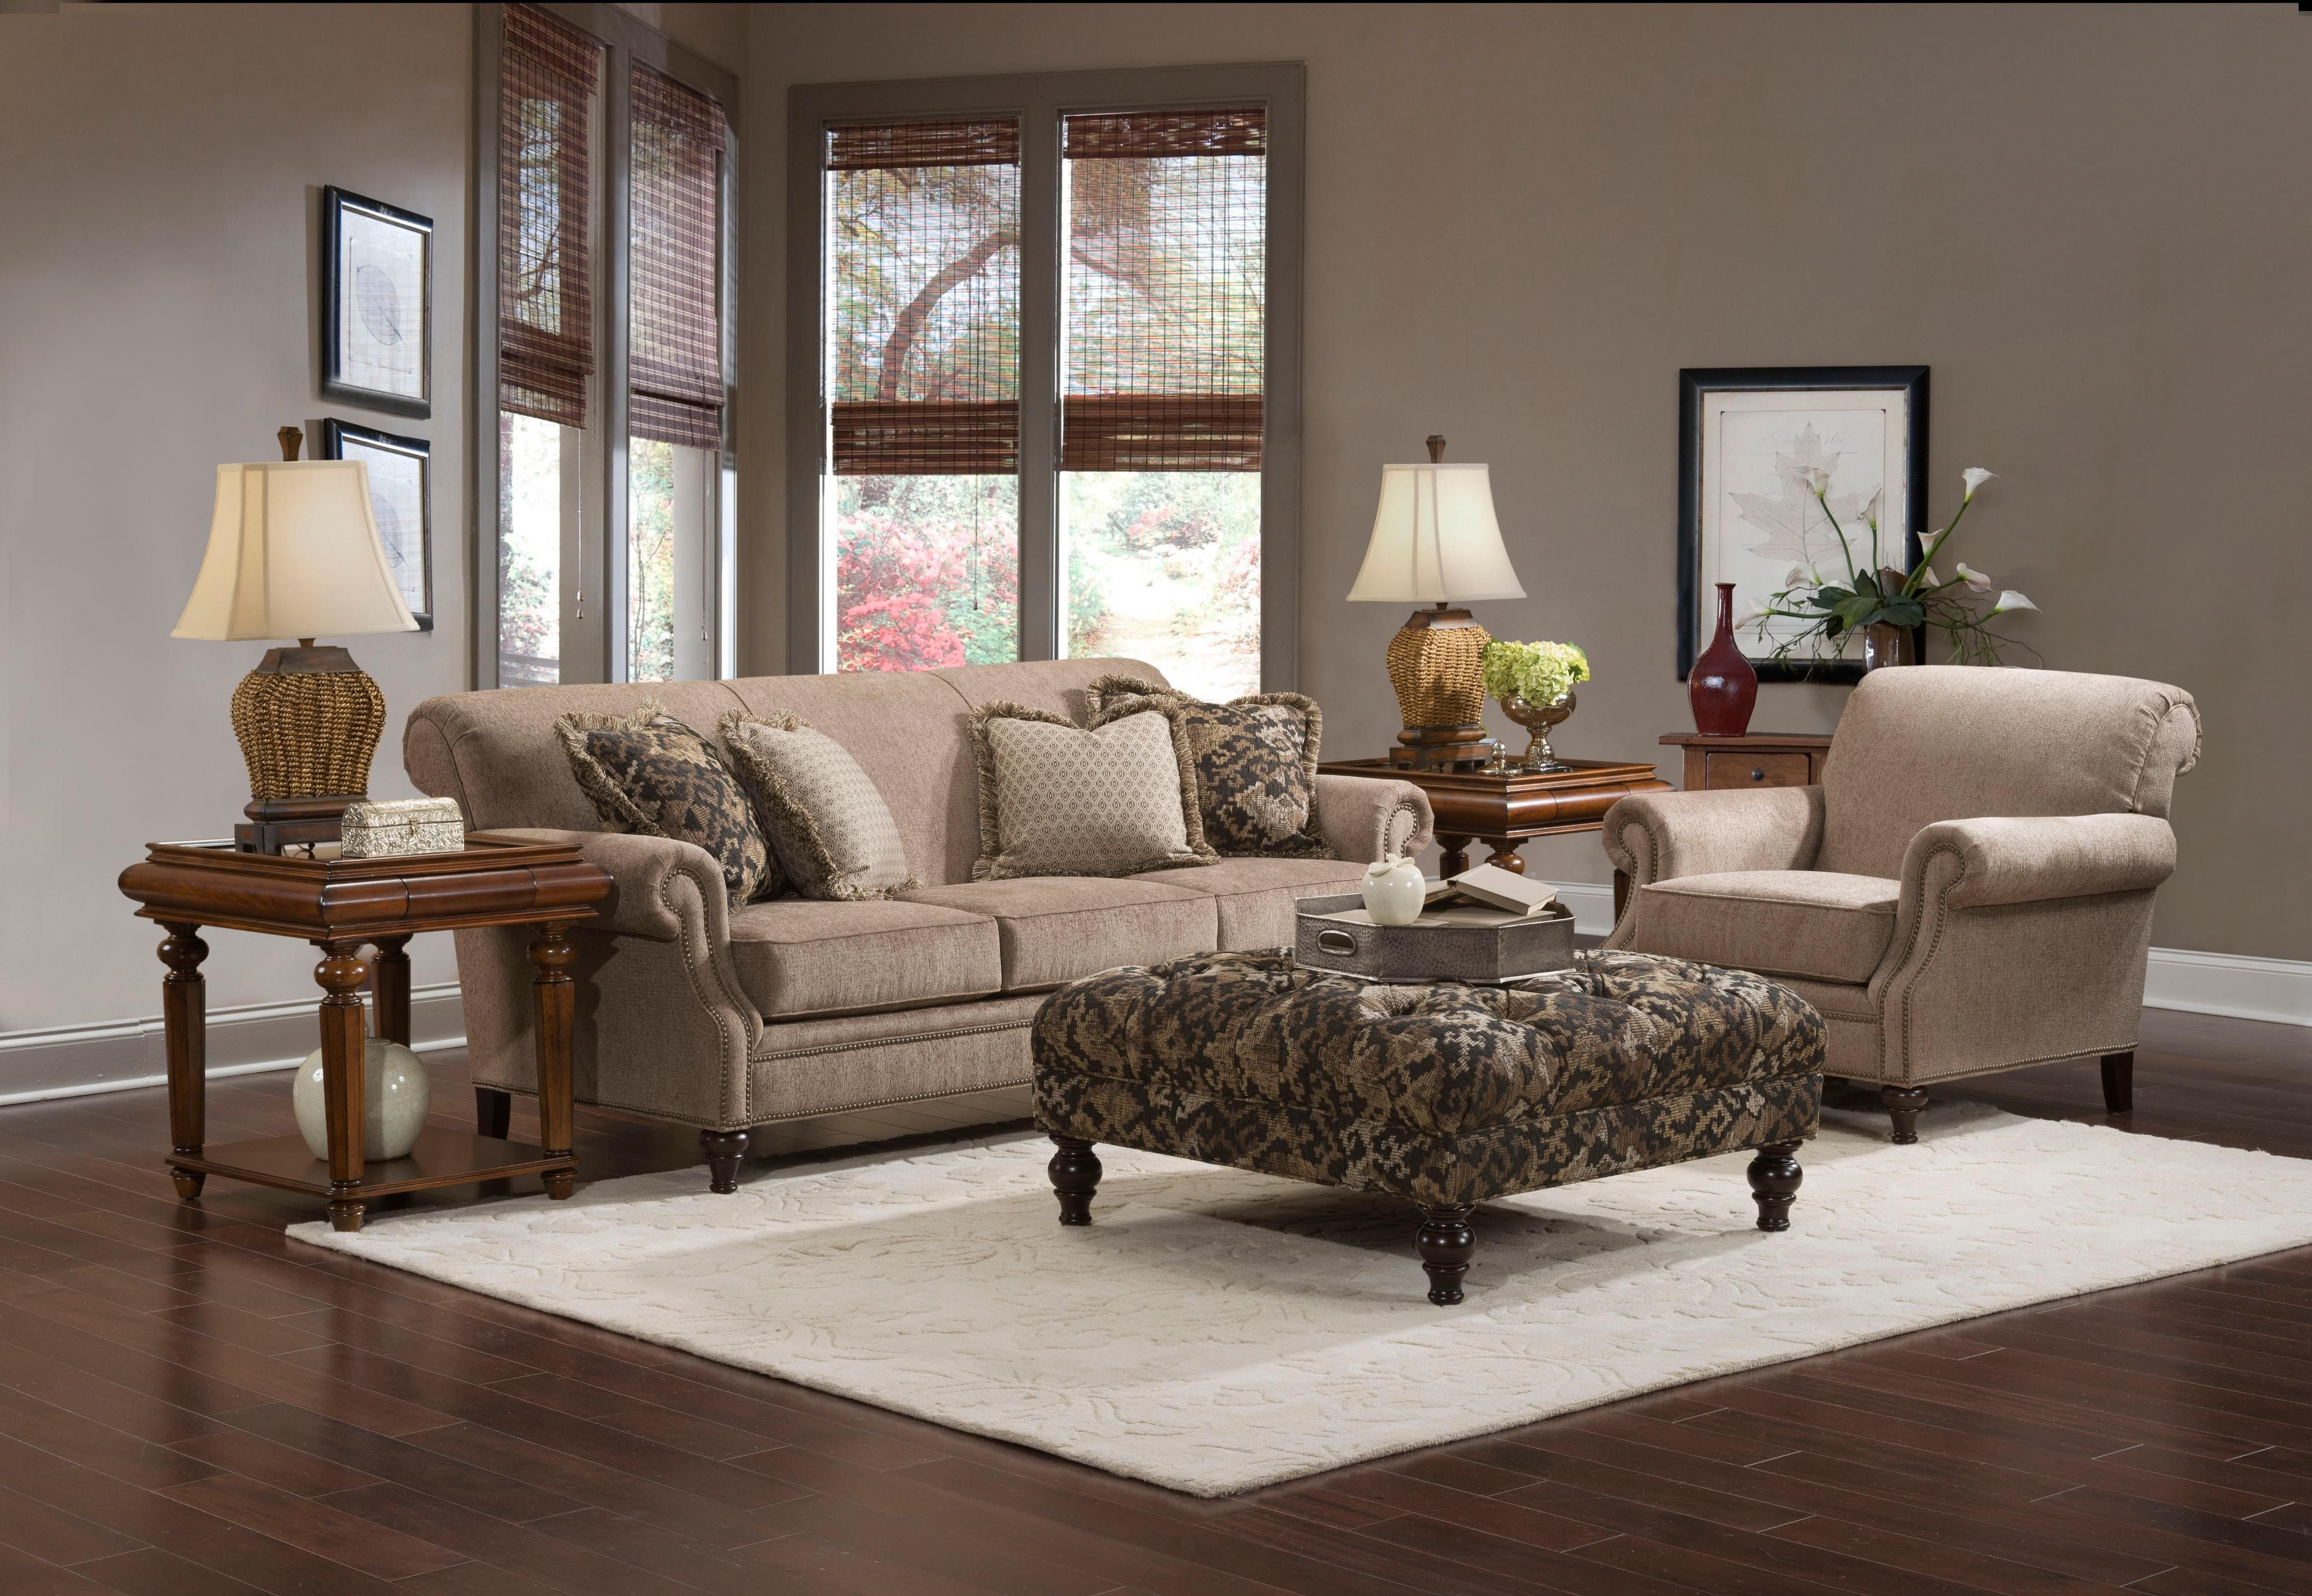 Broyhill Furniture Windsor Sofa with Rolled Arms Becker